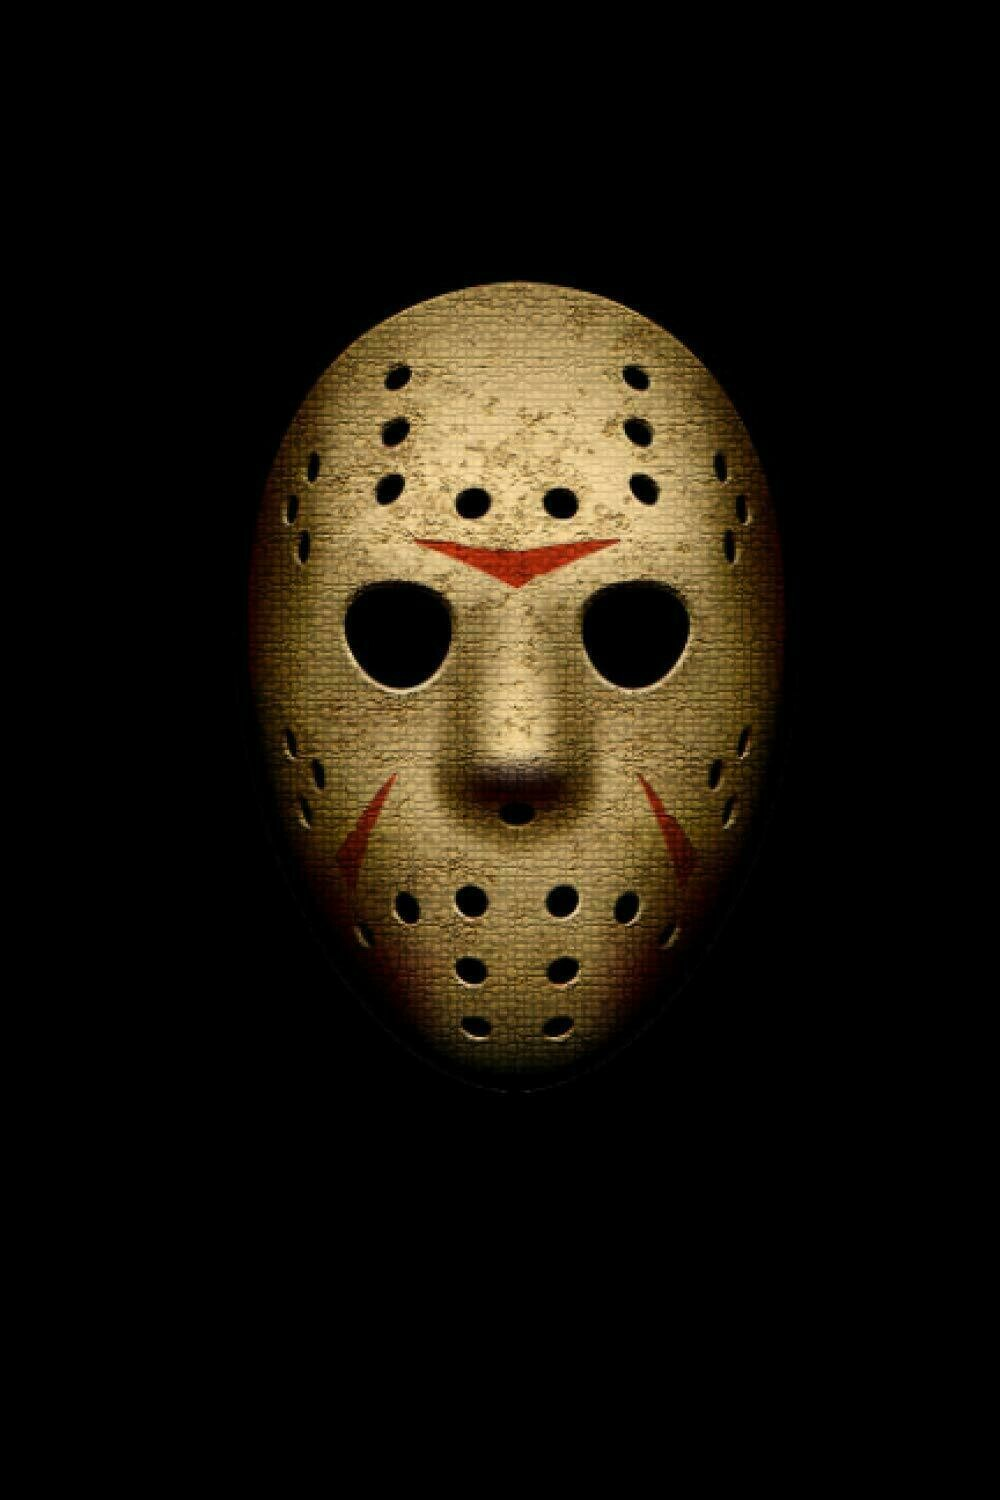 Hockey Mask Killer (FRIDAY THE 13TH / JASON VOORHEES) Luxury Lined Notebook - Journal Diary Writing Paper Note Pad Movie Prop Horror